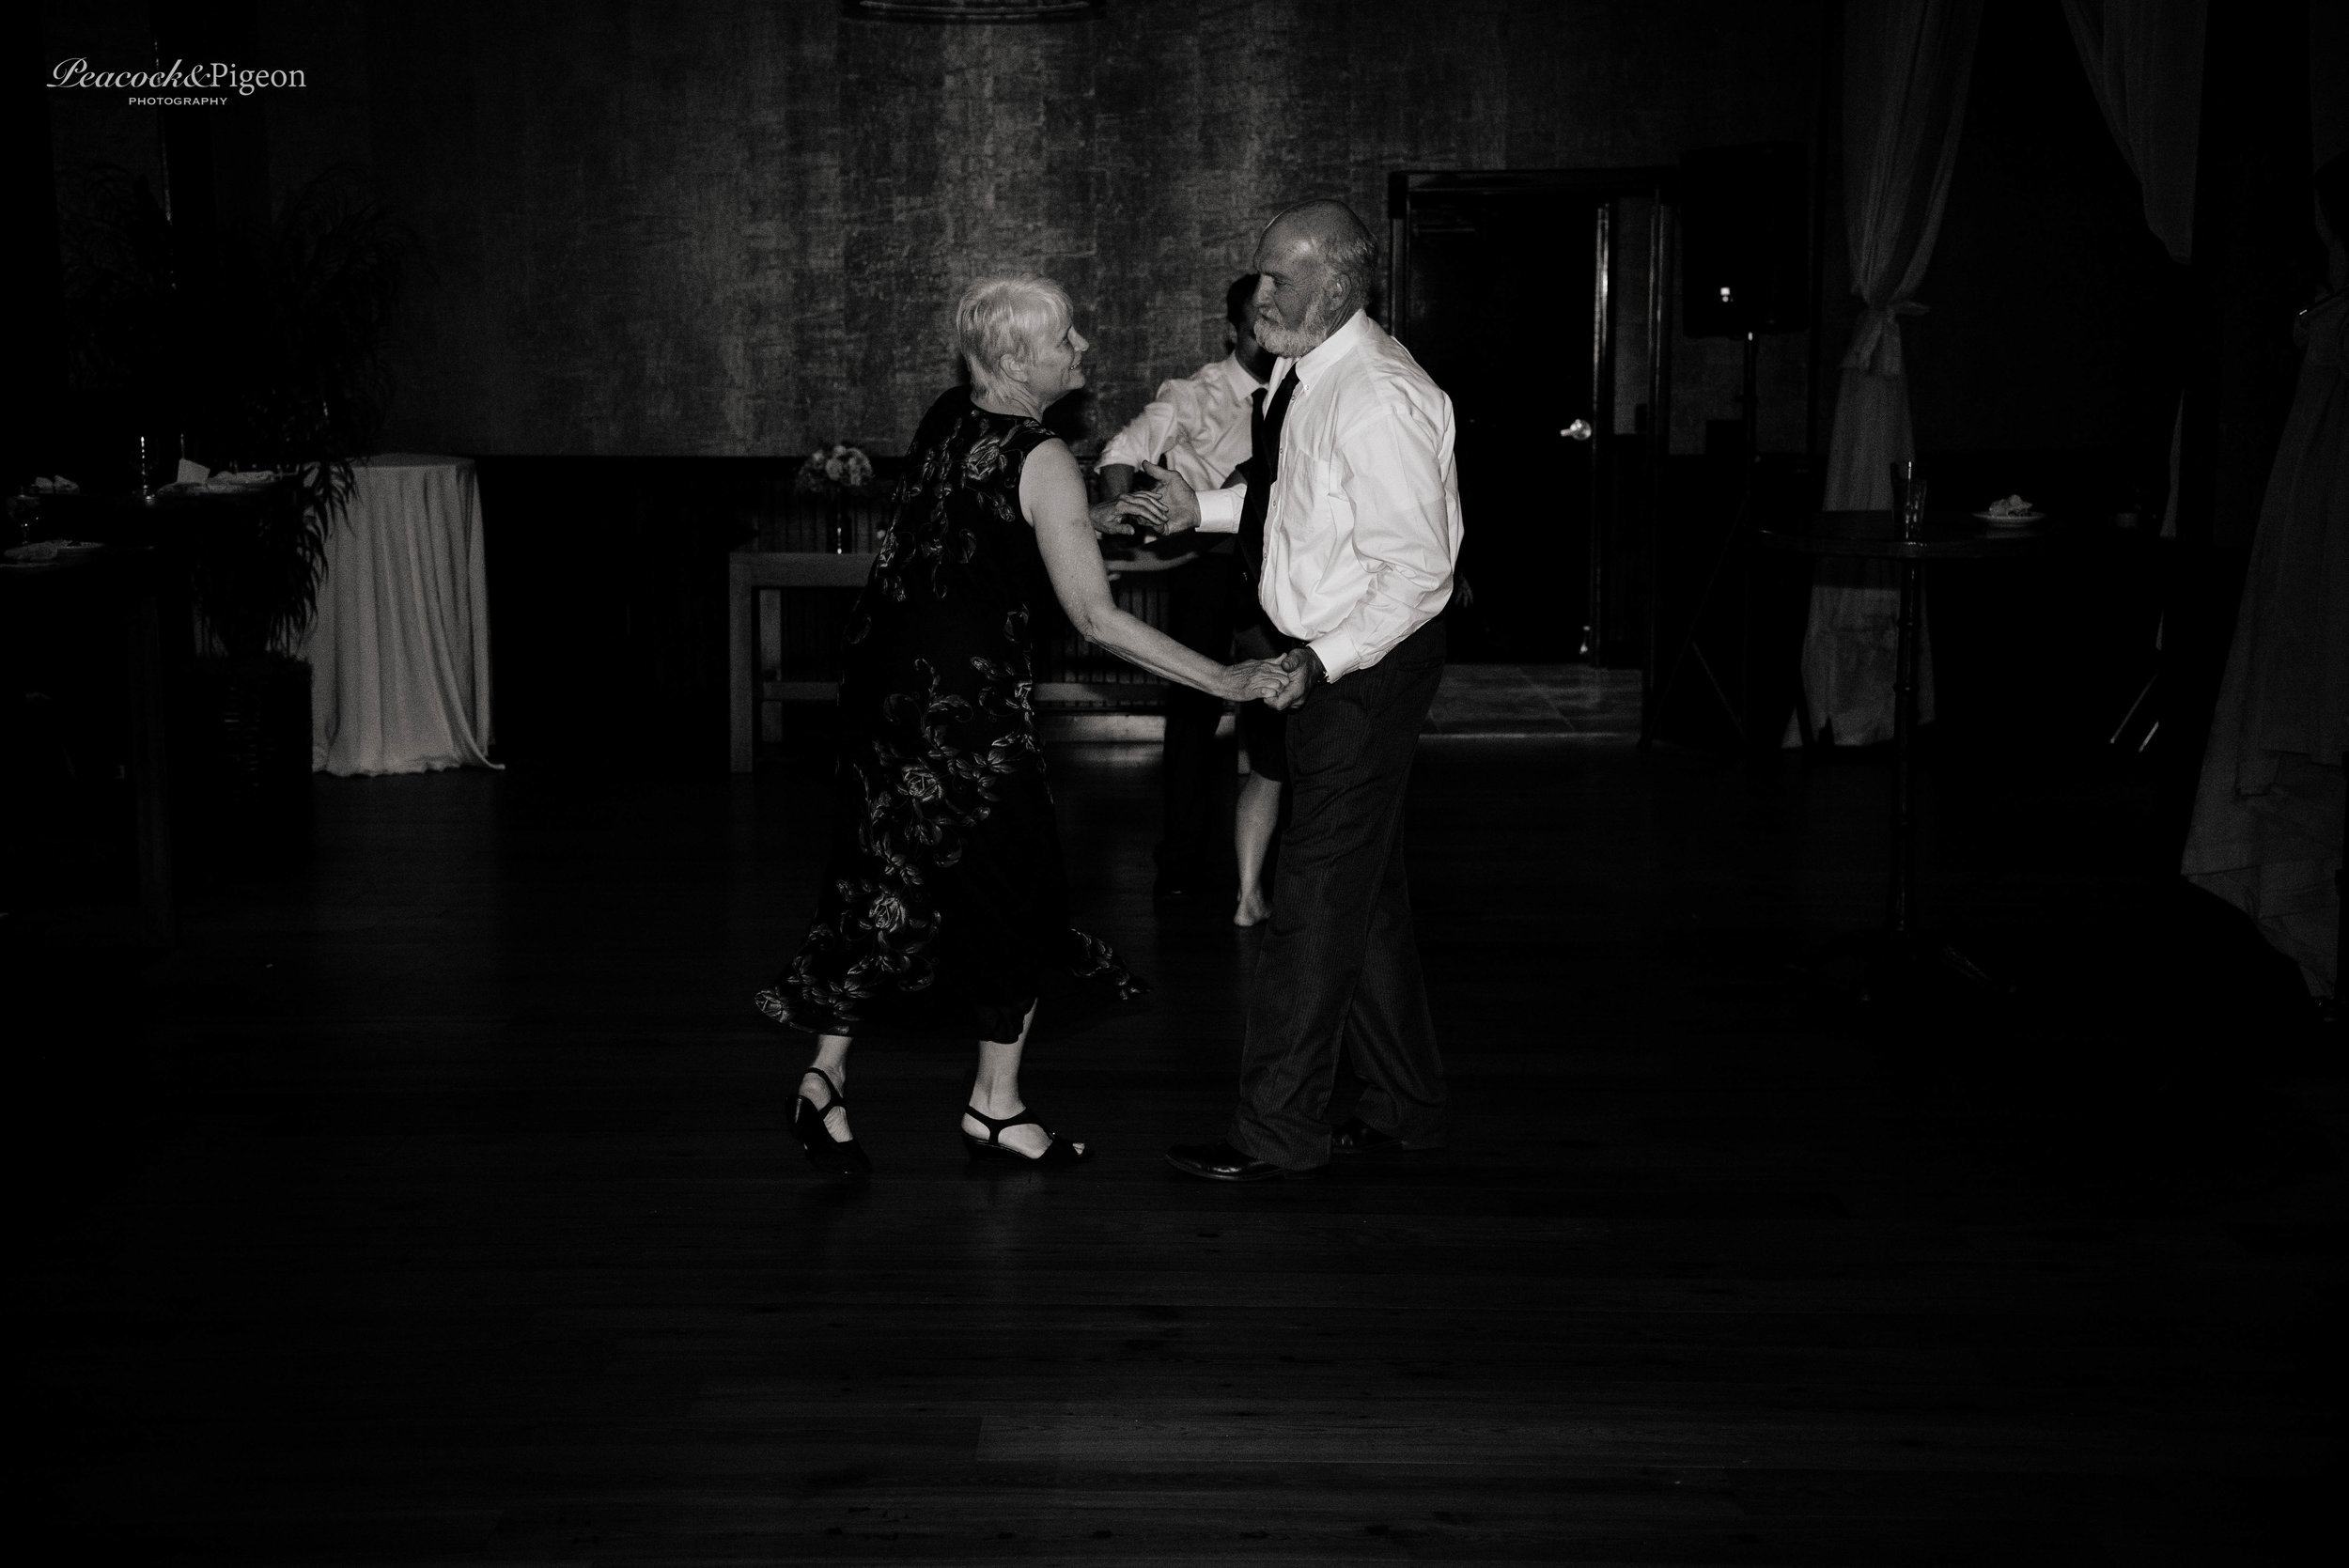 Callum_and_Sara's_Wedding_at_the_Cork_Factory_Hotel_in_Lancaster_Part_Eleven_Dancing_Continued_Black_and_White_Watermarked-63.jpg